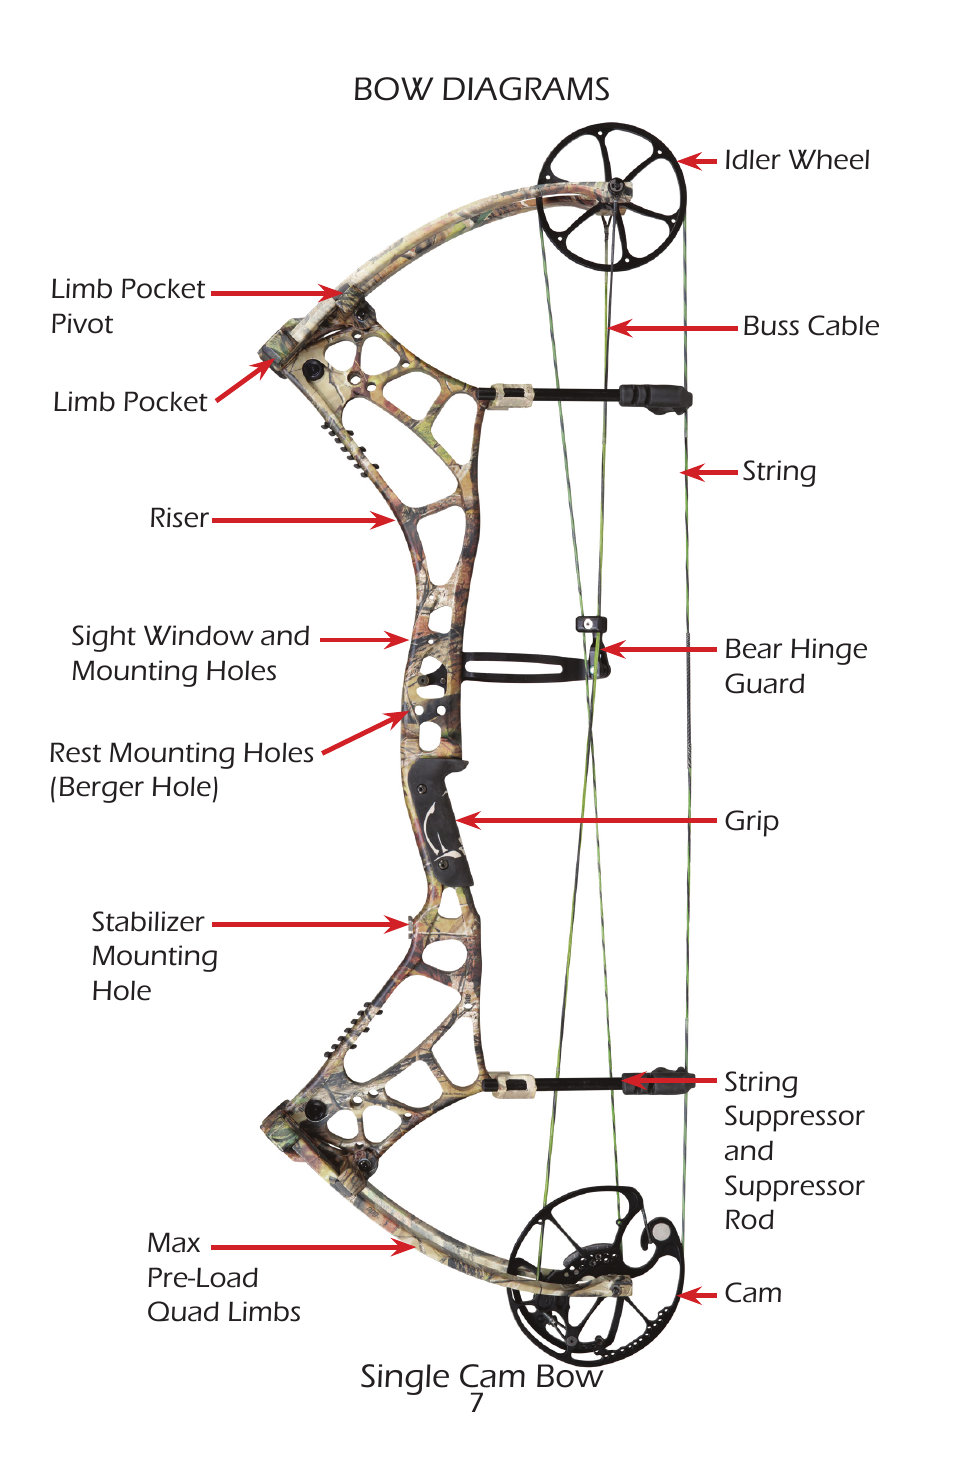 Bow Diagrams Single Cam Bow